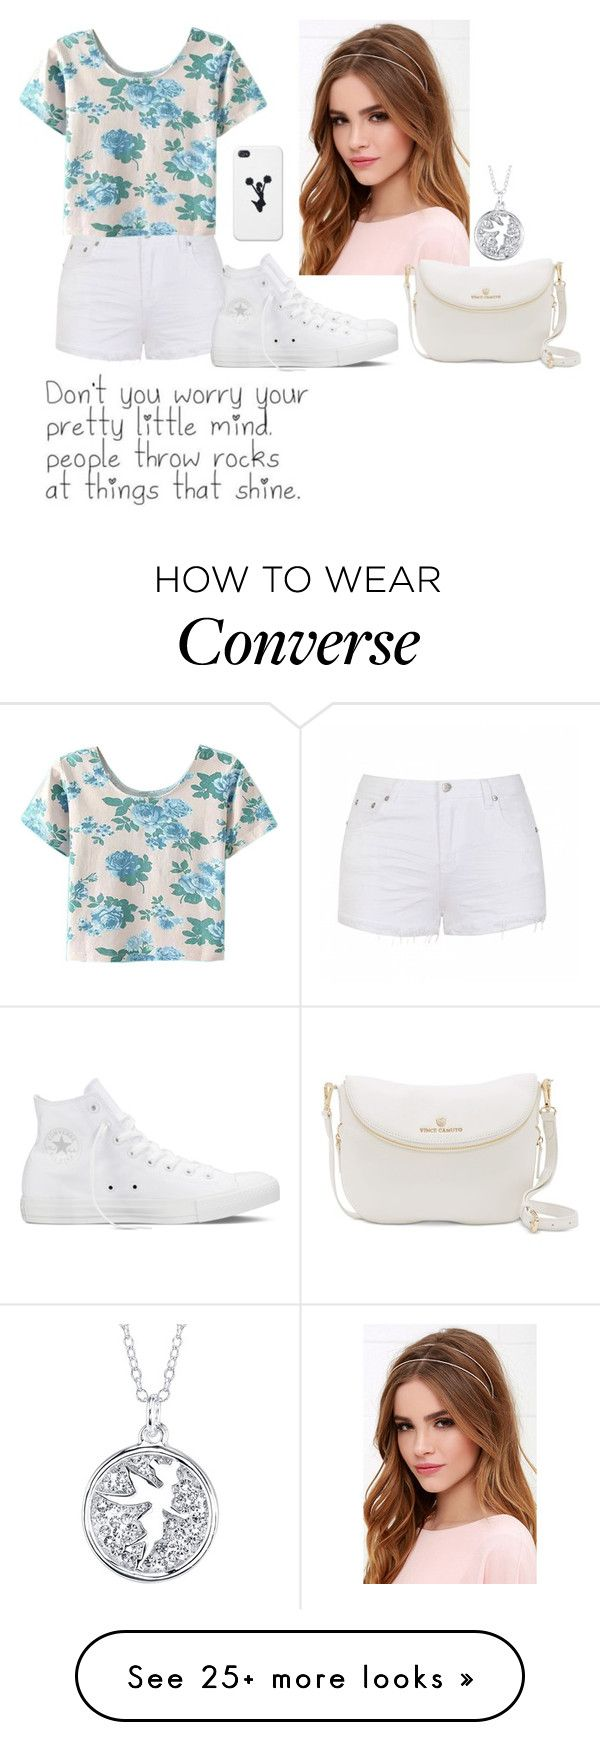 """Love like"" by hannahmcpherson12 on Polyvore featuring Ally Fashion, WithChic, Converse, Lulu*s, Vince Camuto, Disney, women's clothing, women, female and woman"